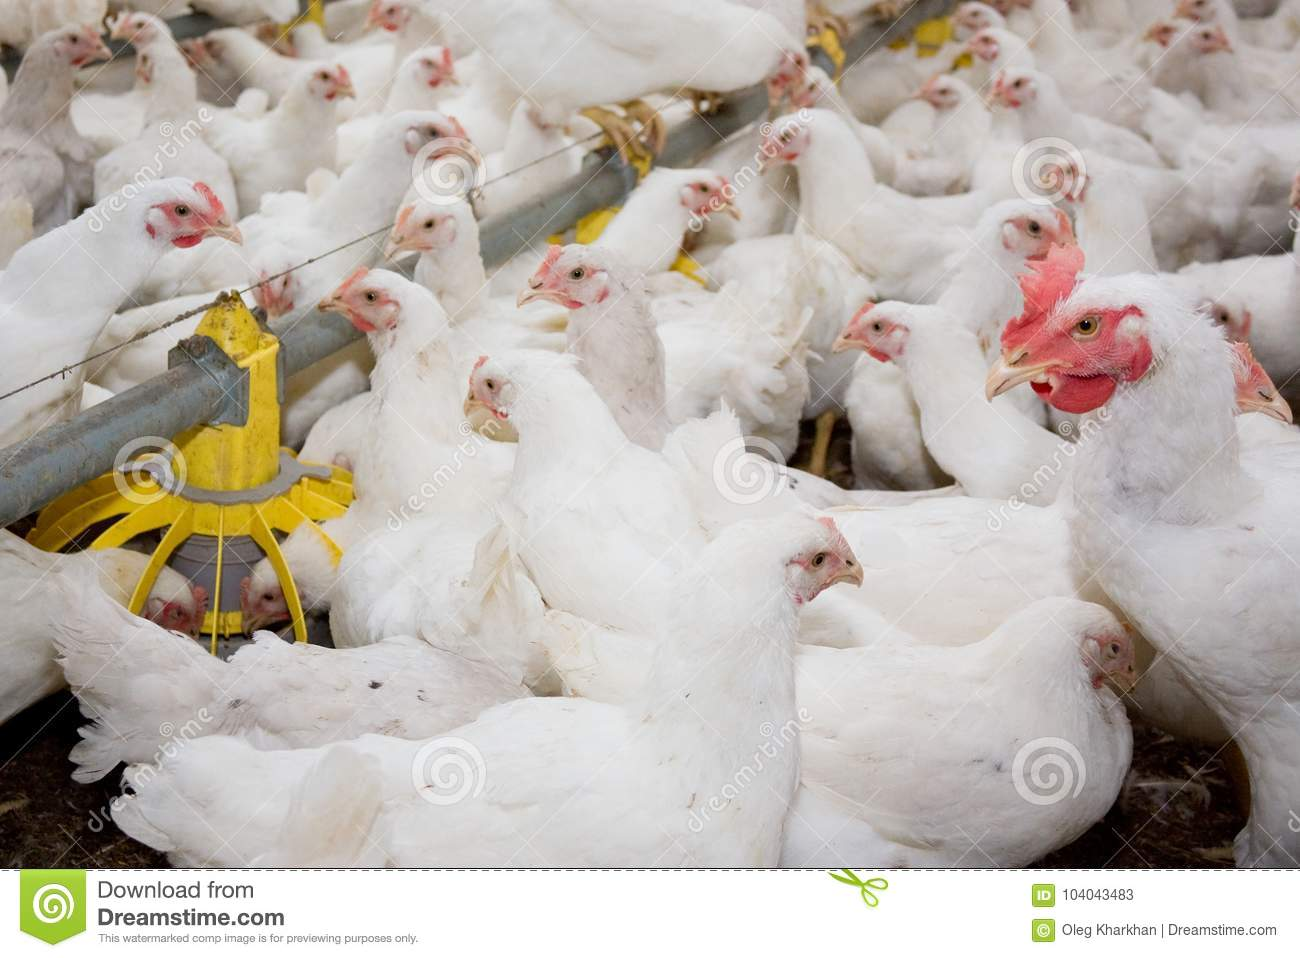 White Broiler Chickens At The Poultry Farm Stock Image - Image of